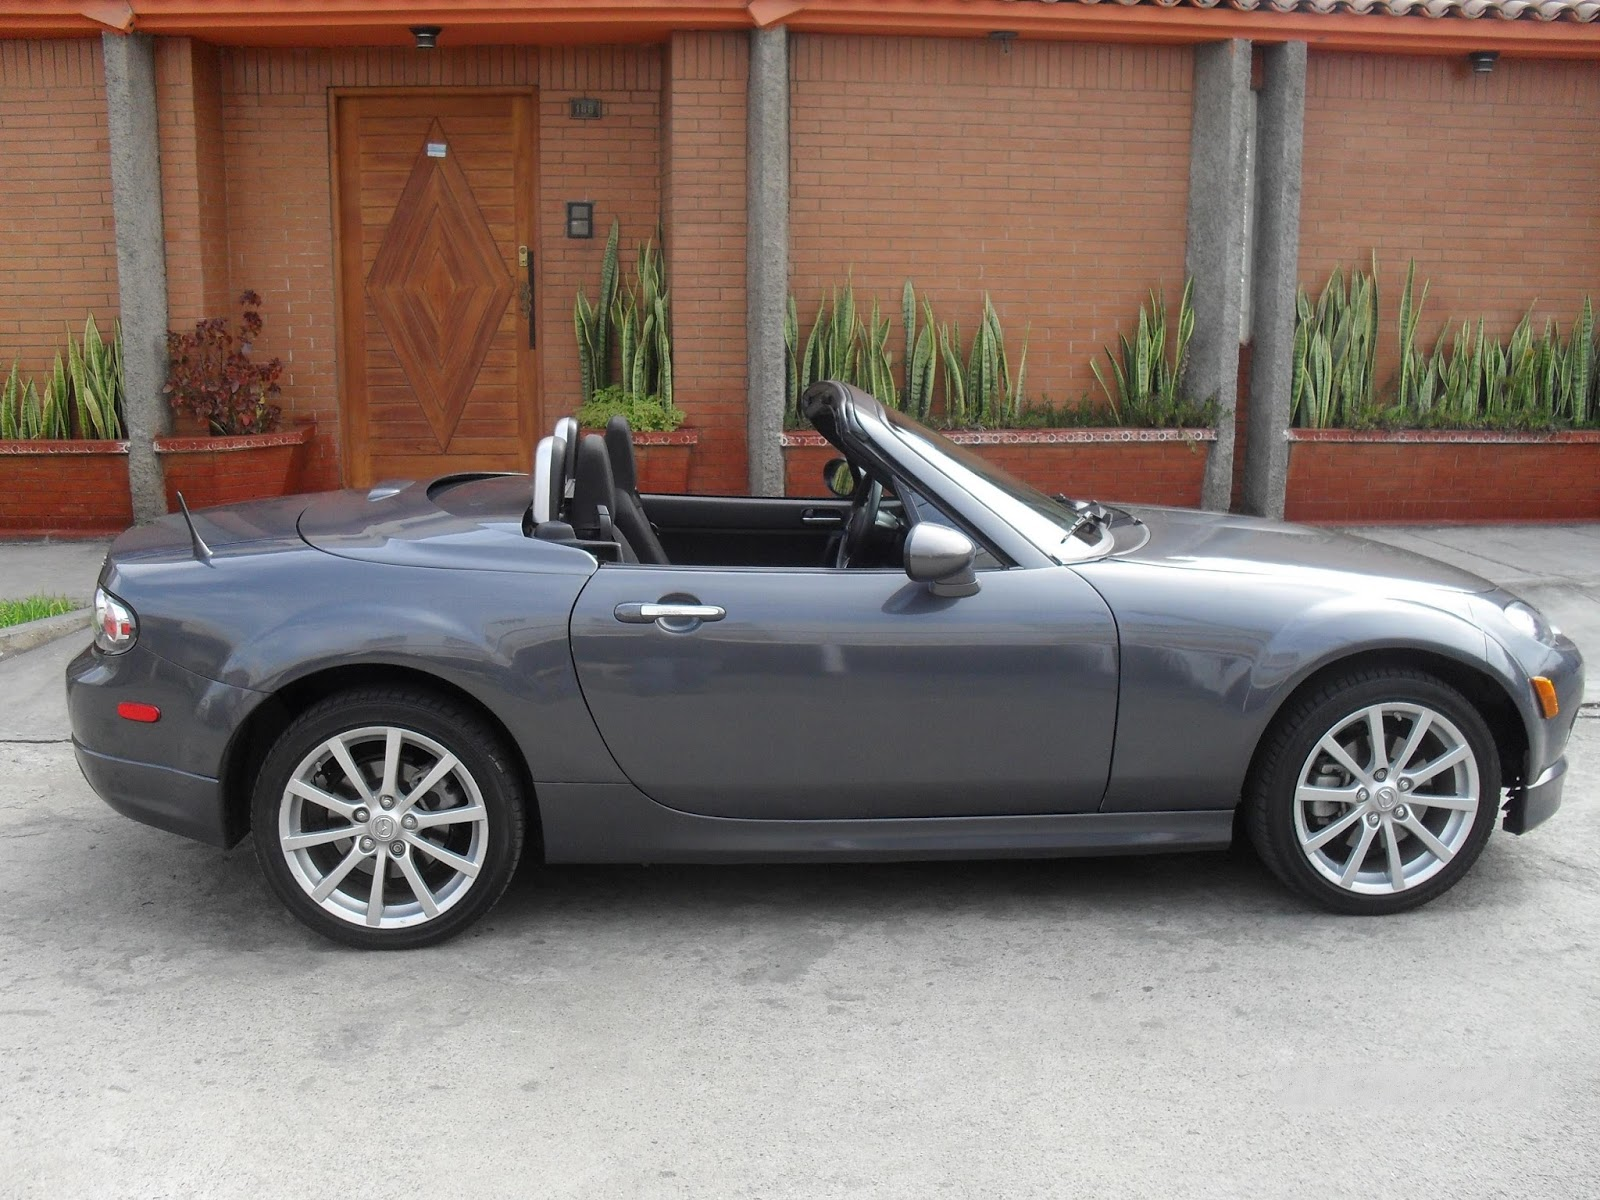 mazda mx 5 miata sport convertible car review car wallpaper prices specification. Black Bedroom Furniture Sets. Home Design Ideas